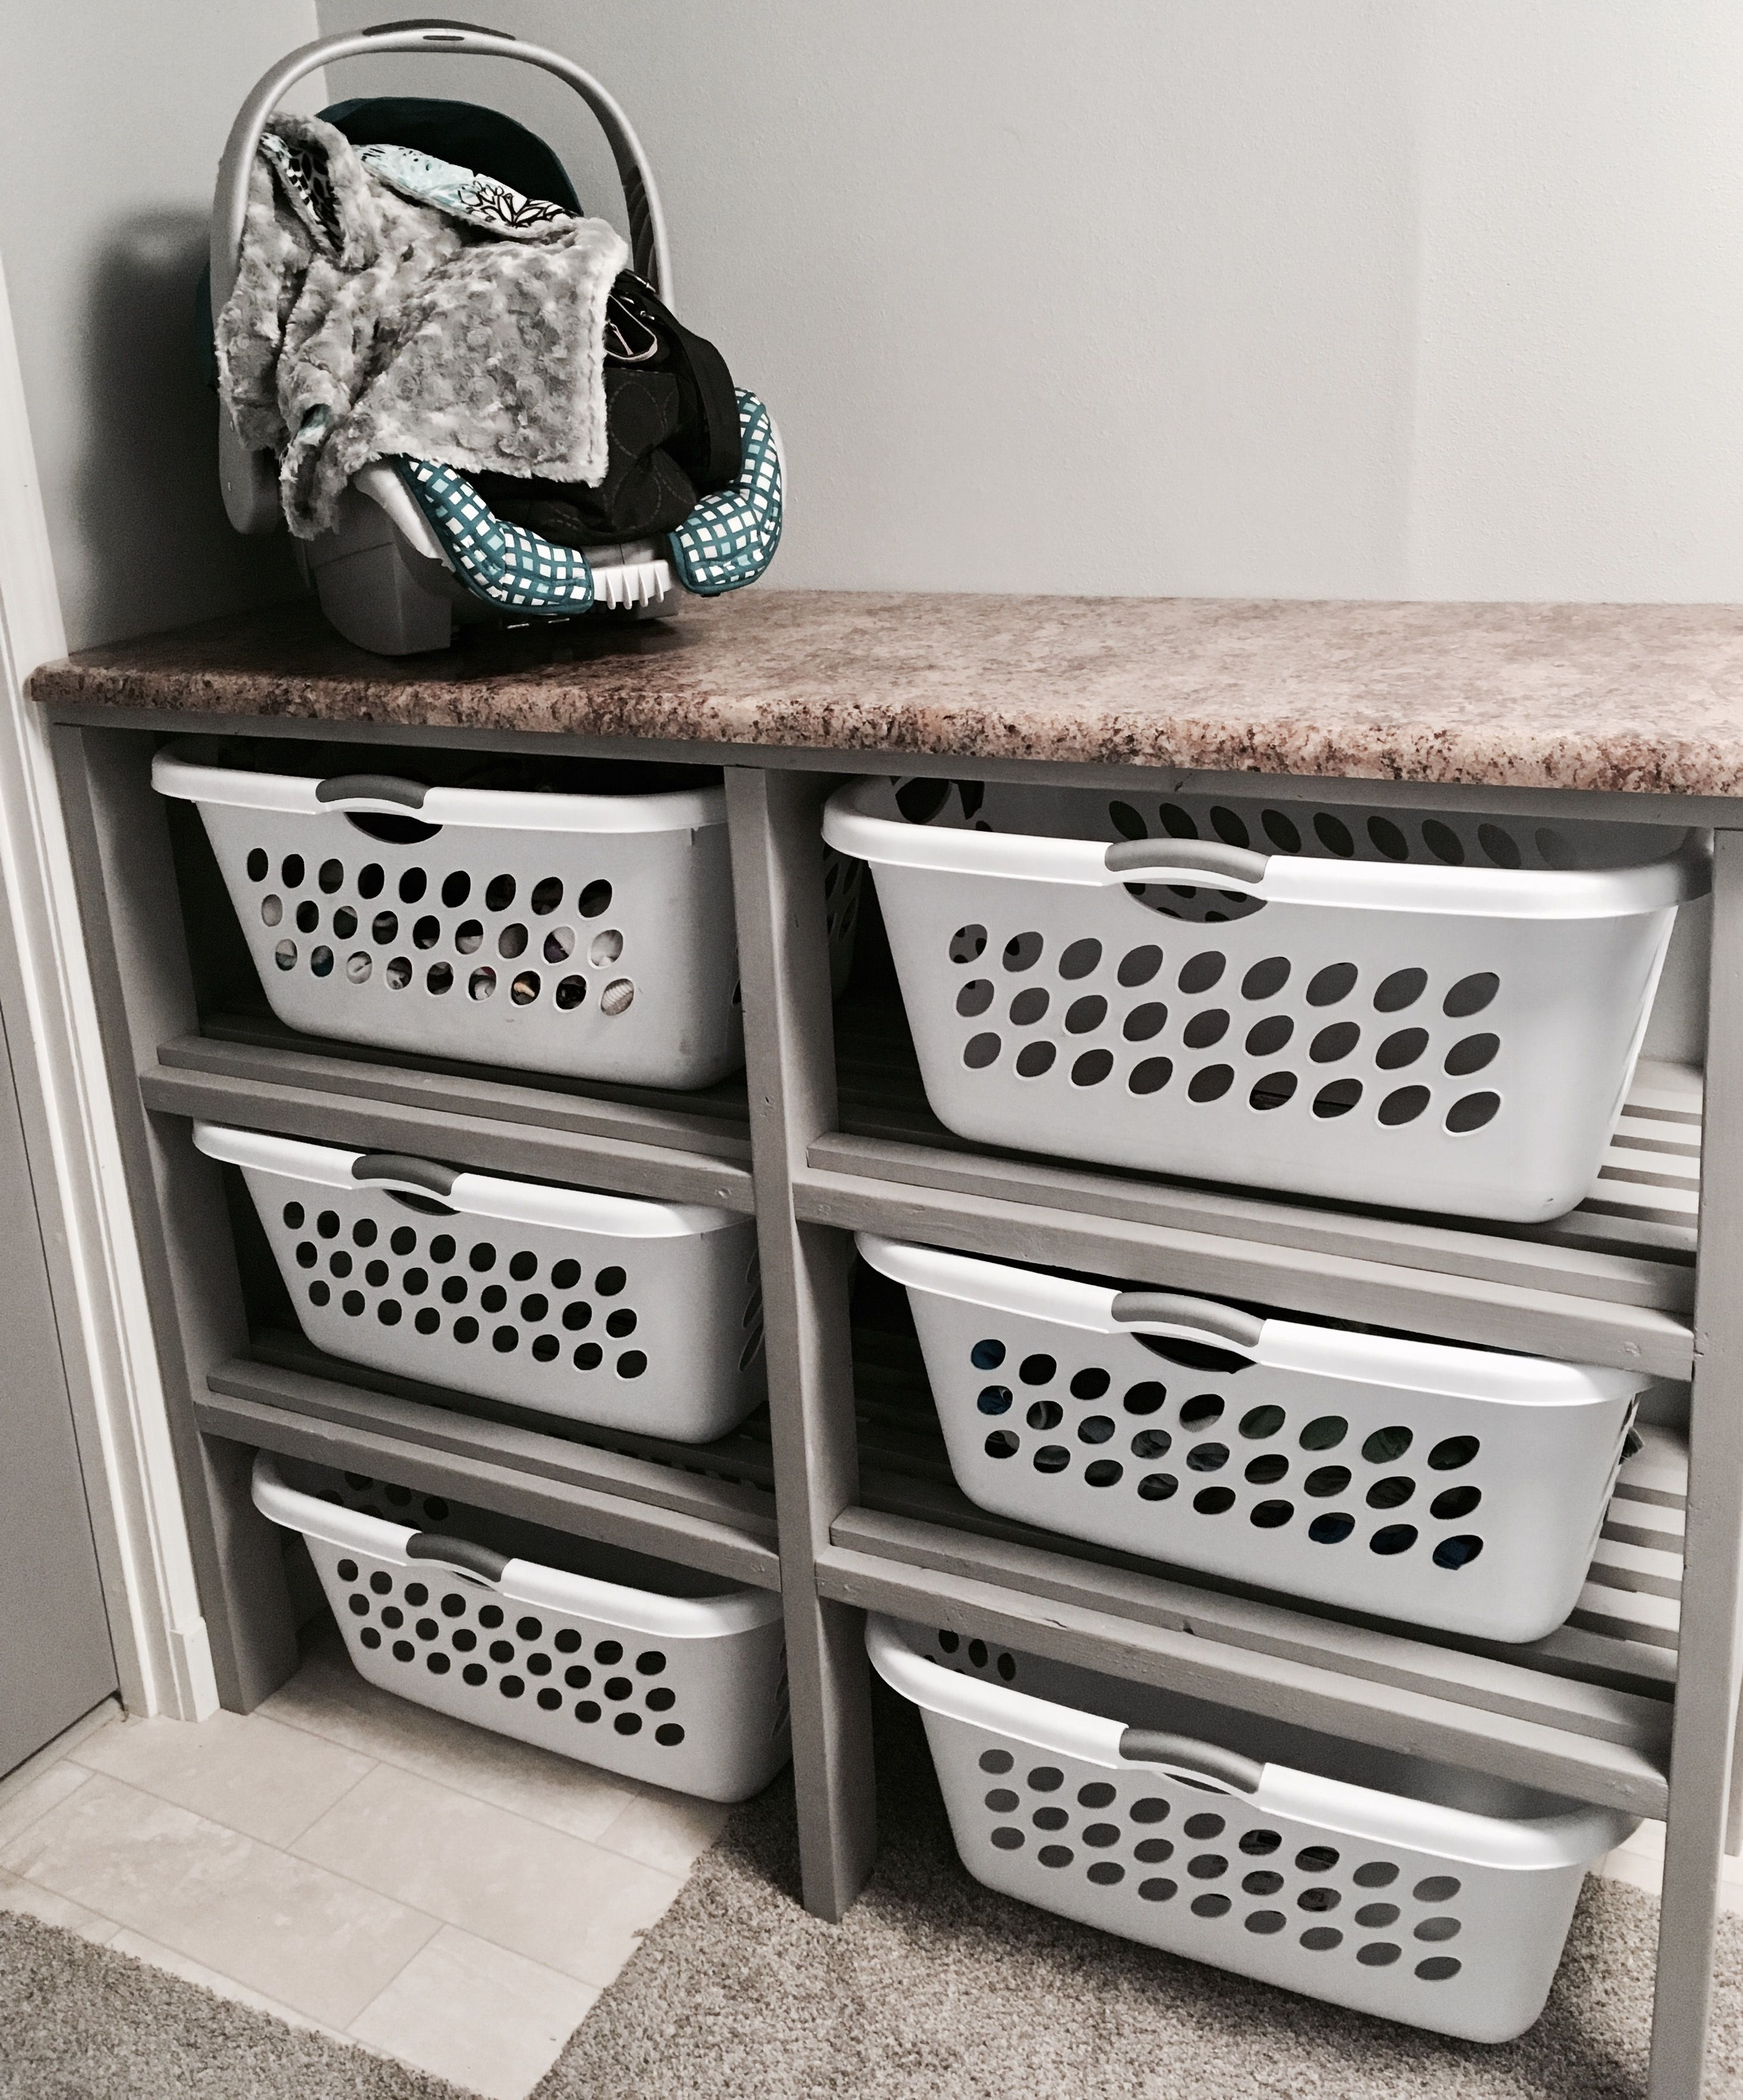 Living Room Inspiration For Big Families: I Love My Hand Built Laundry Dresser. 6 Baskets For My Big